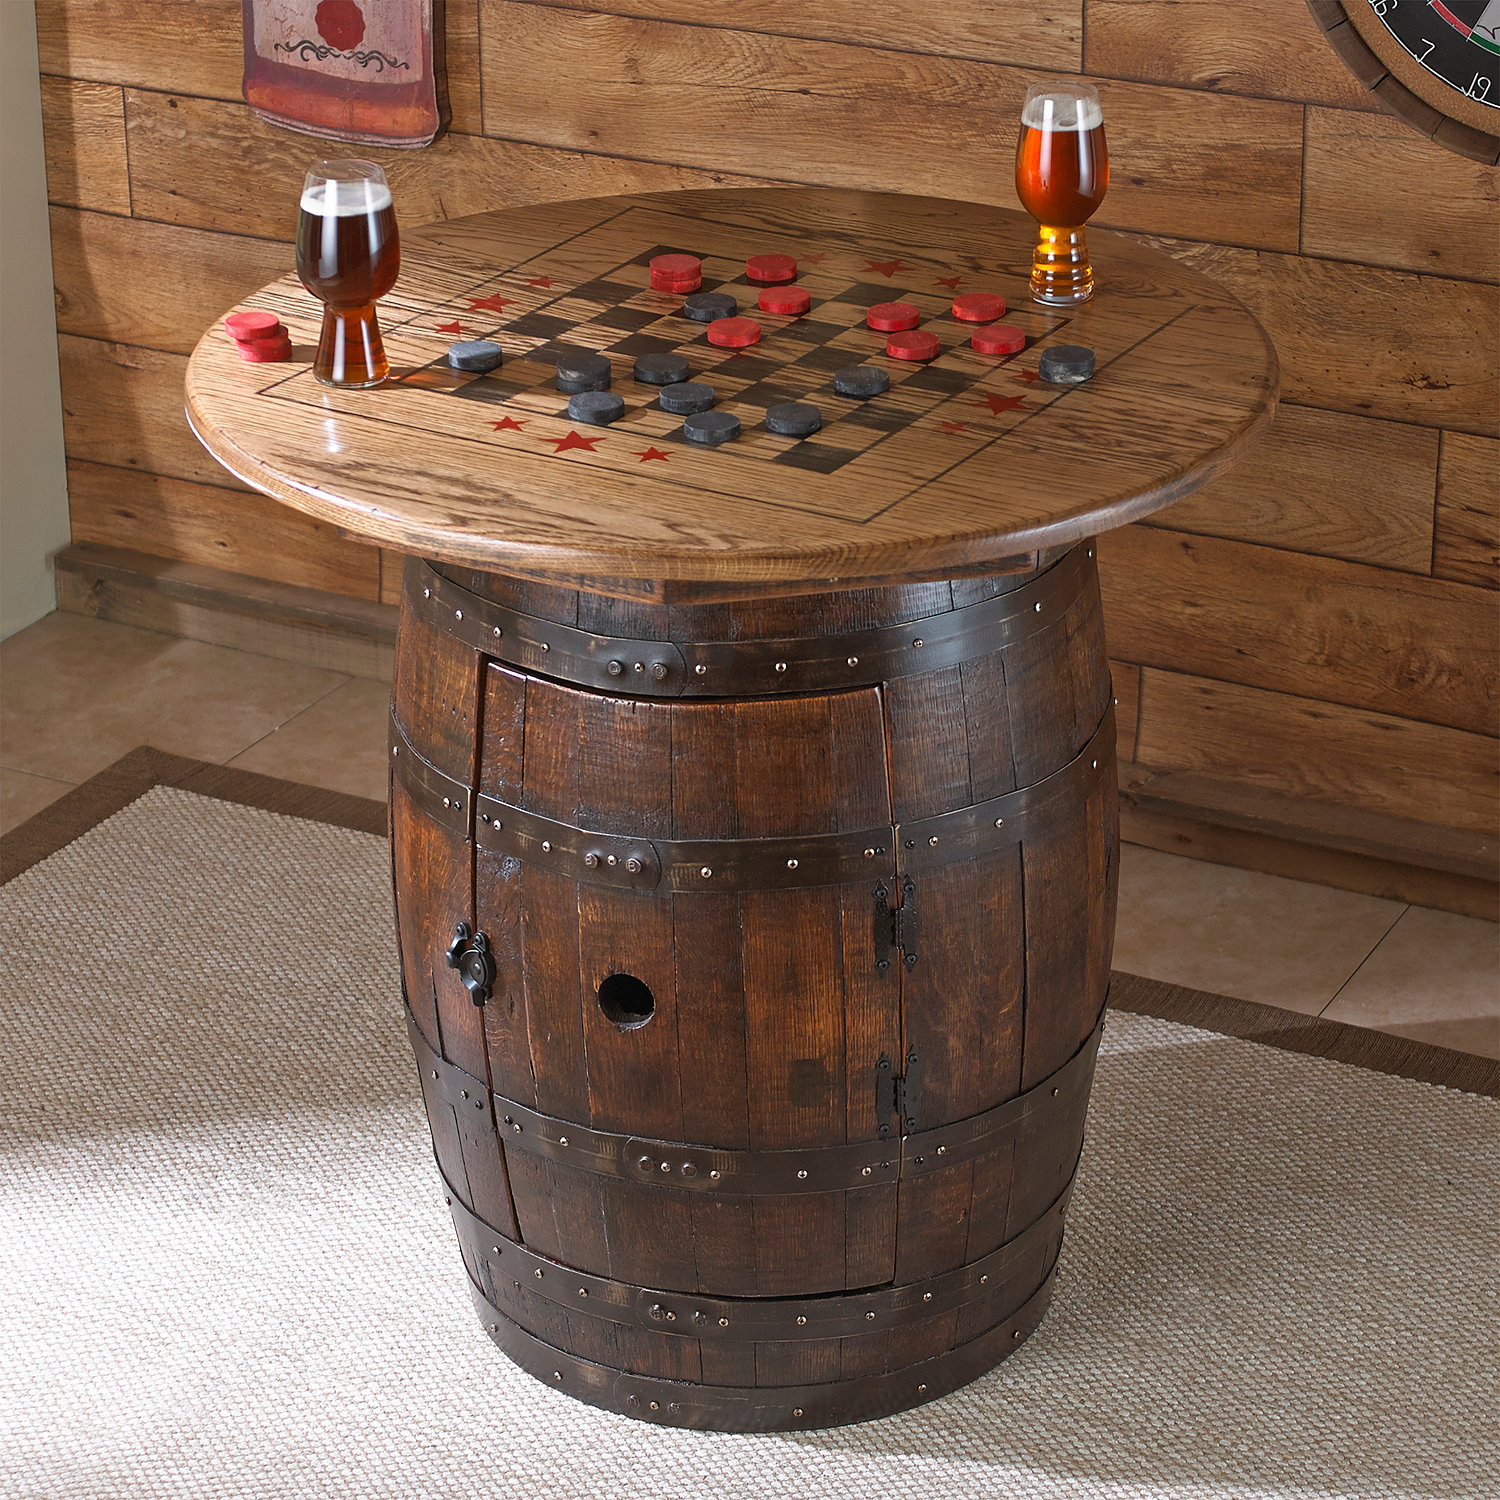 Vintage oak barrel table and chairs - Houzz